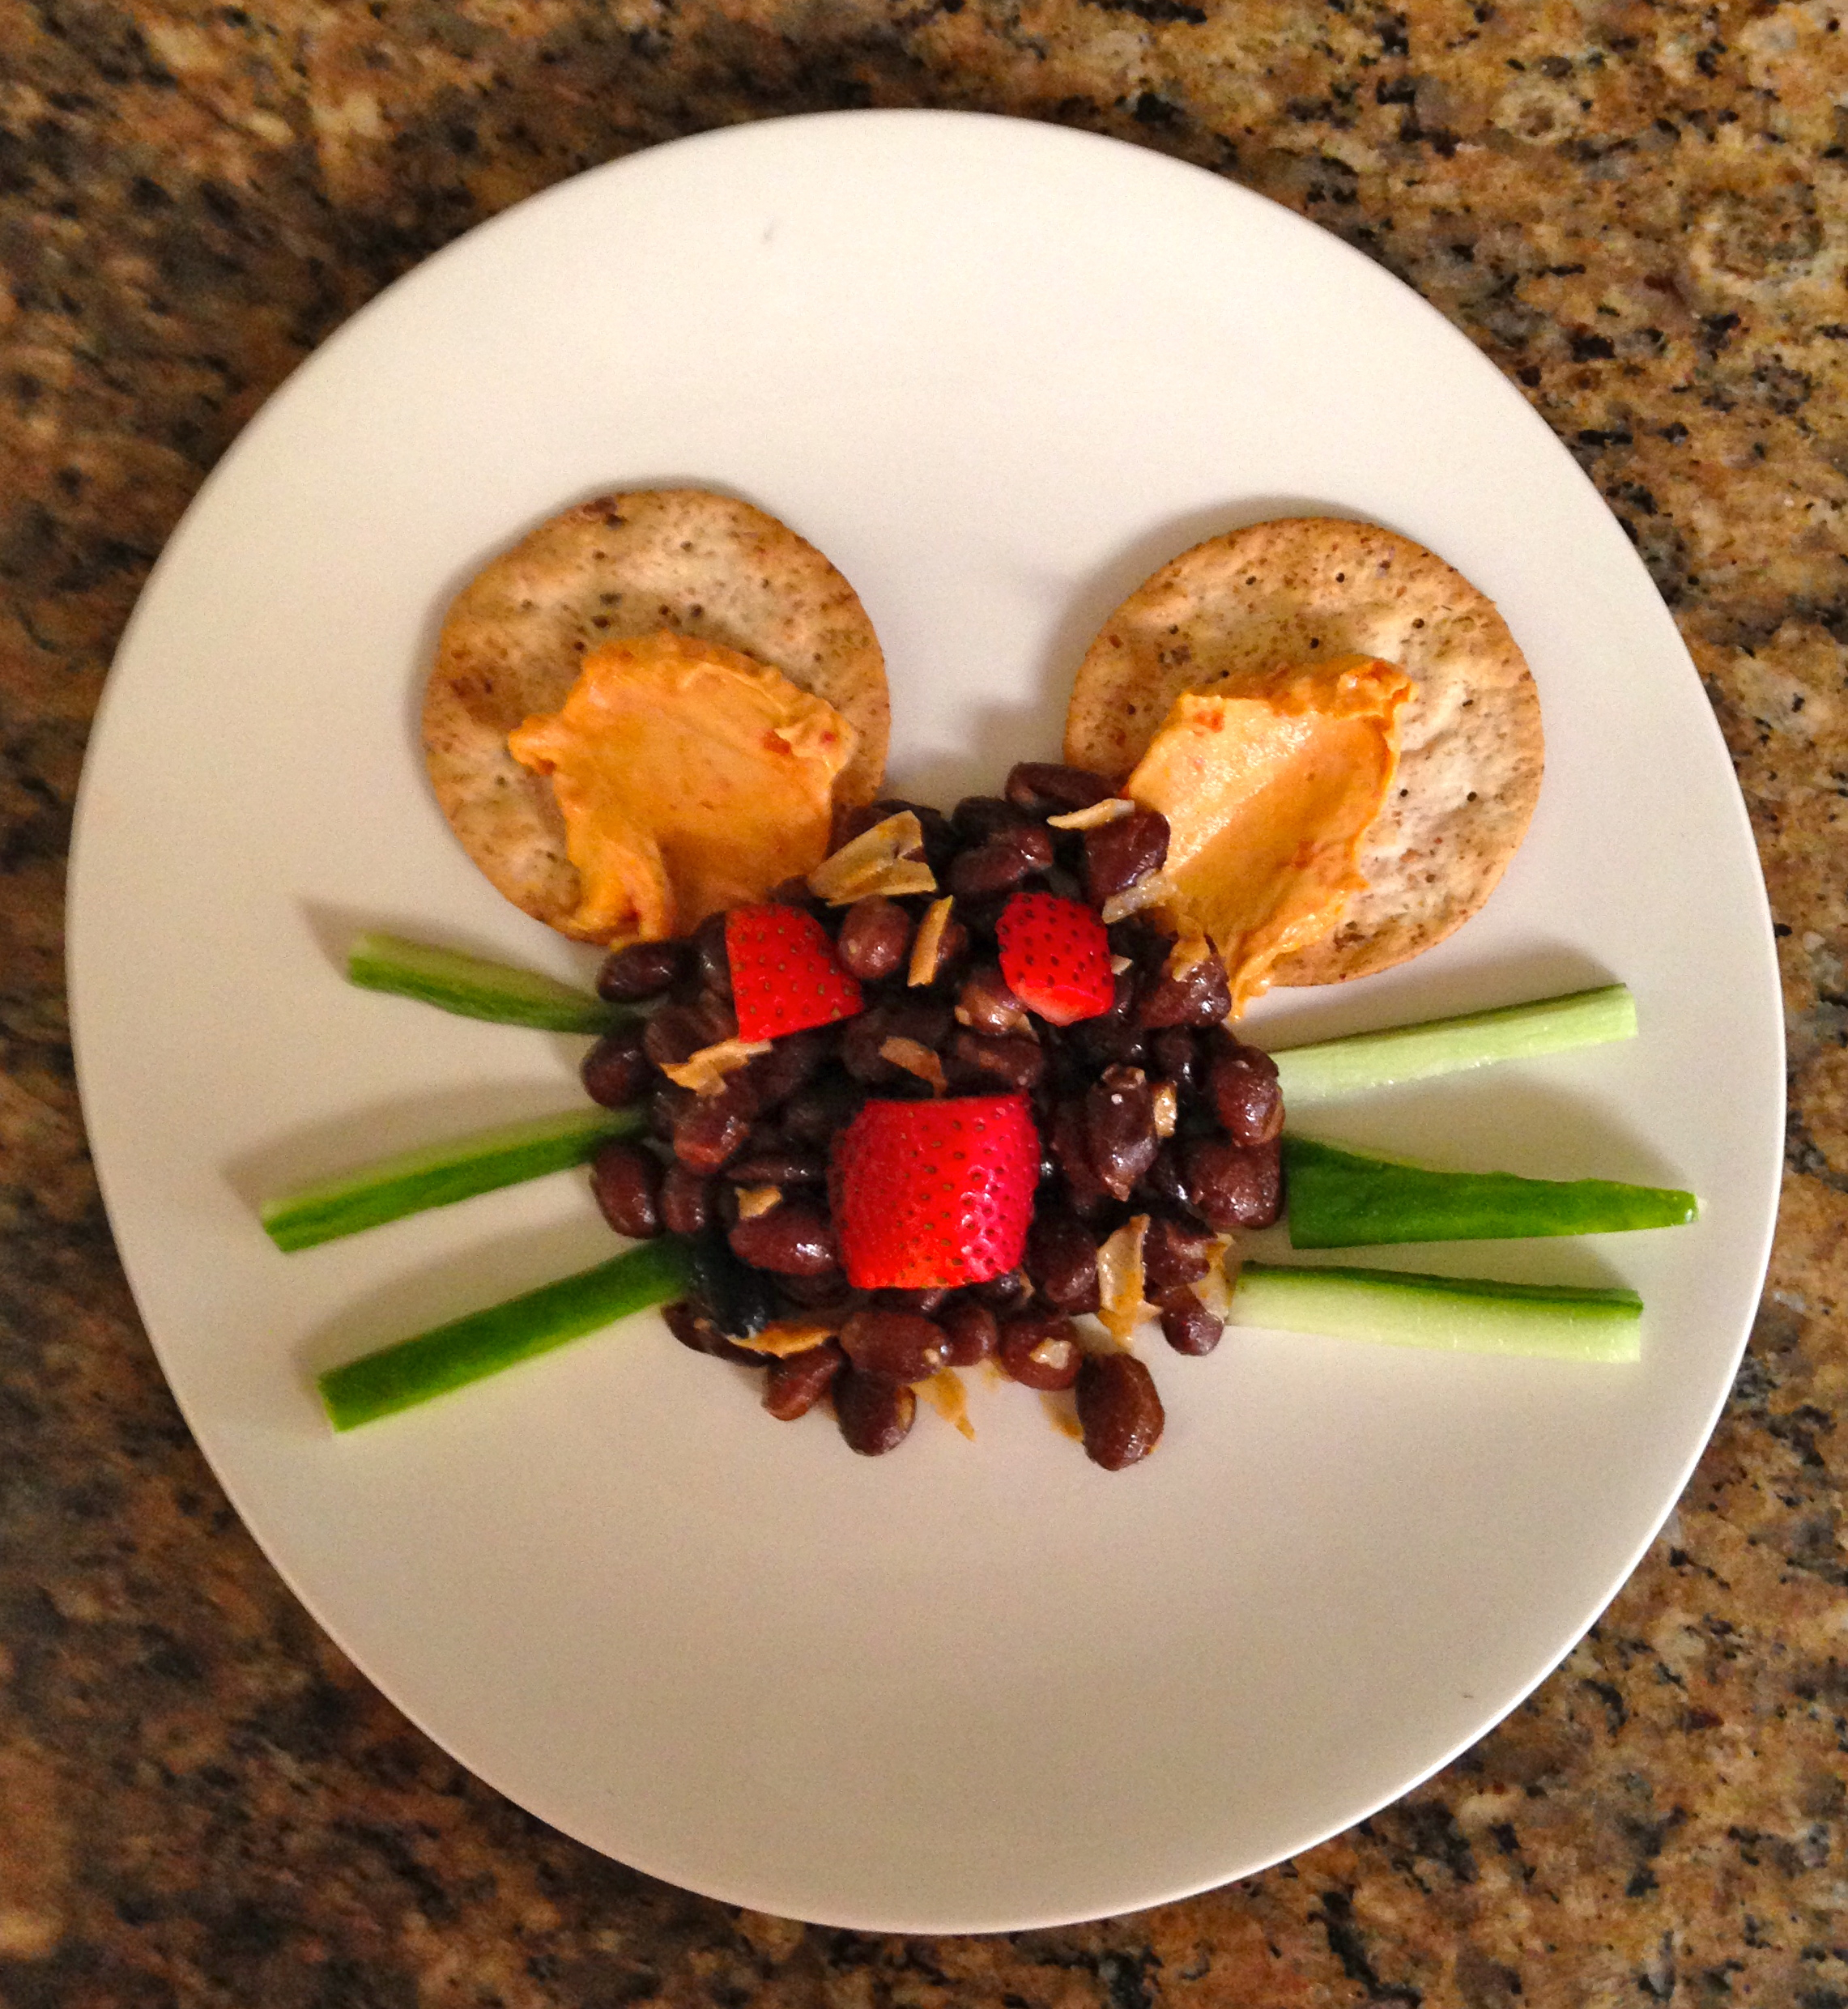 Sarah's Saltiegets the cutest plate ever award for her Alliyum and black beans.